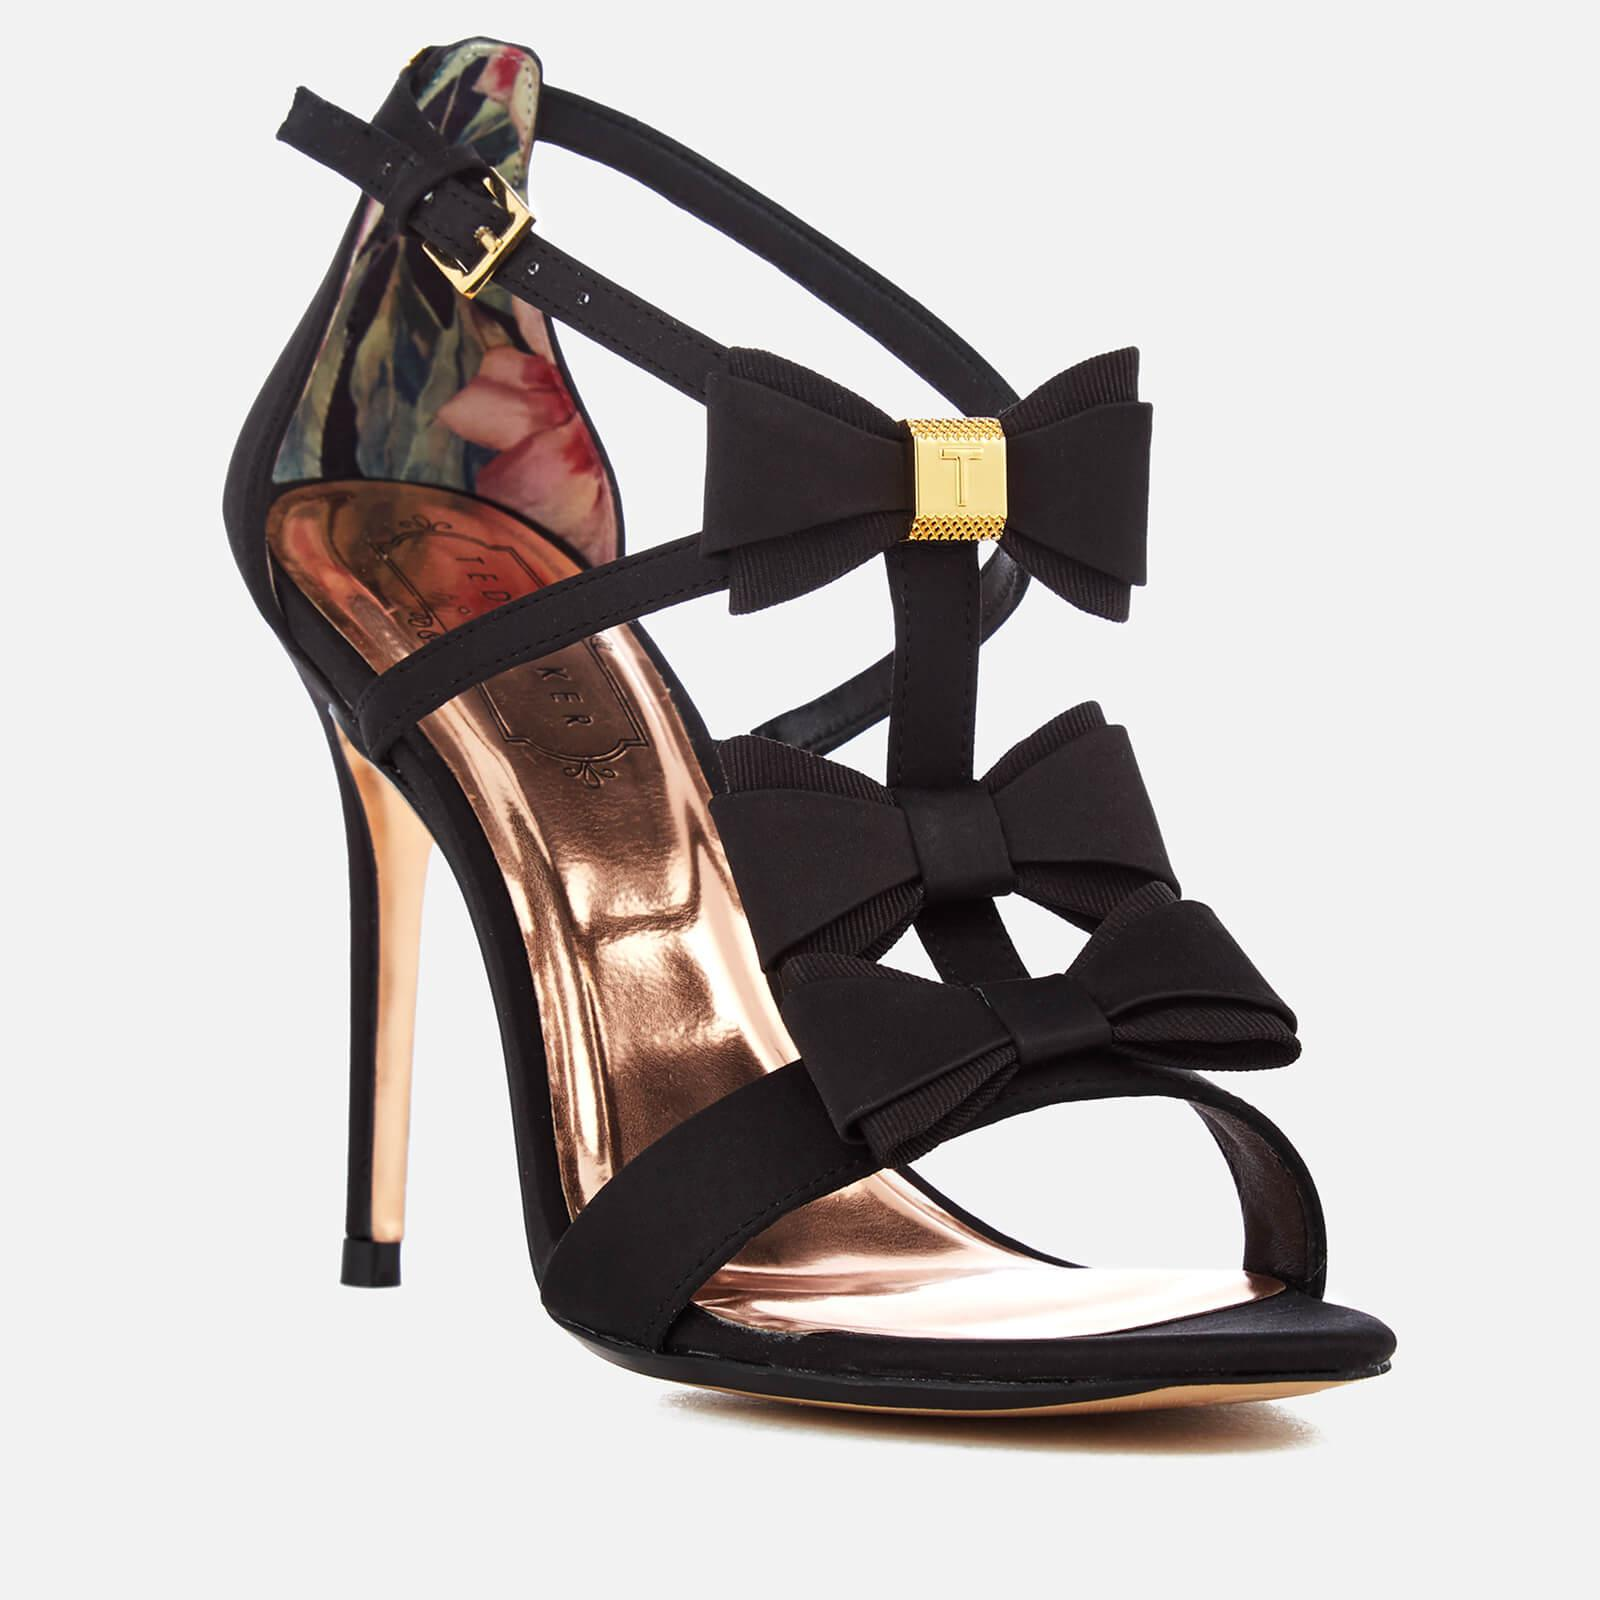 Triple Bow Detail Heeled Sandals Ted Baker jfXrP